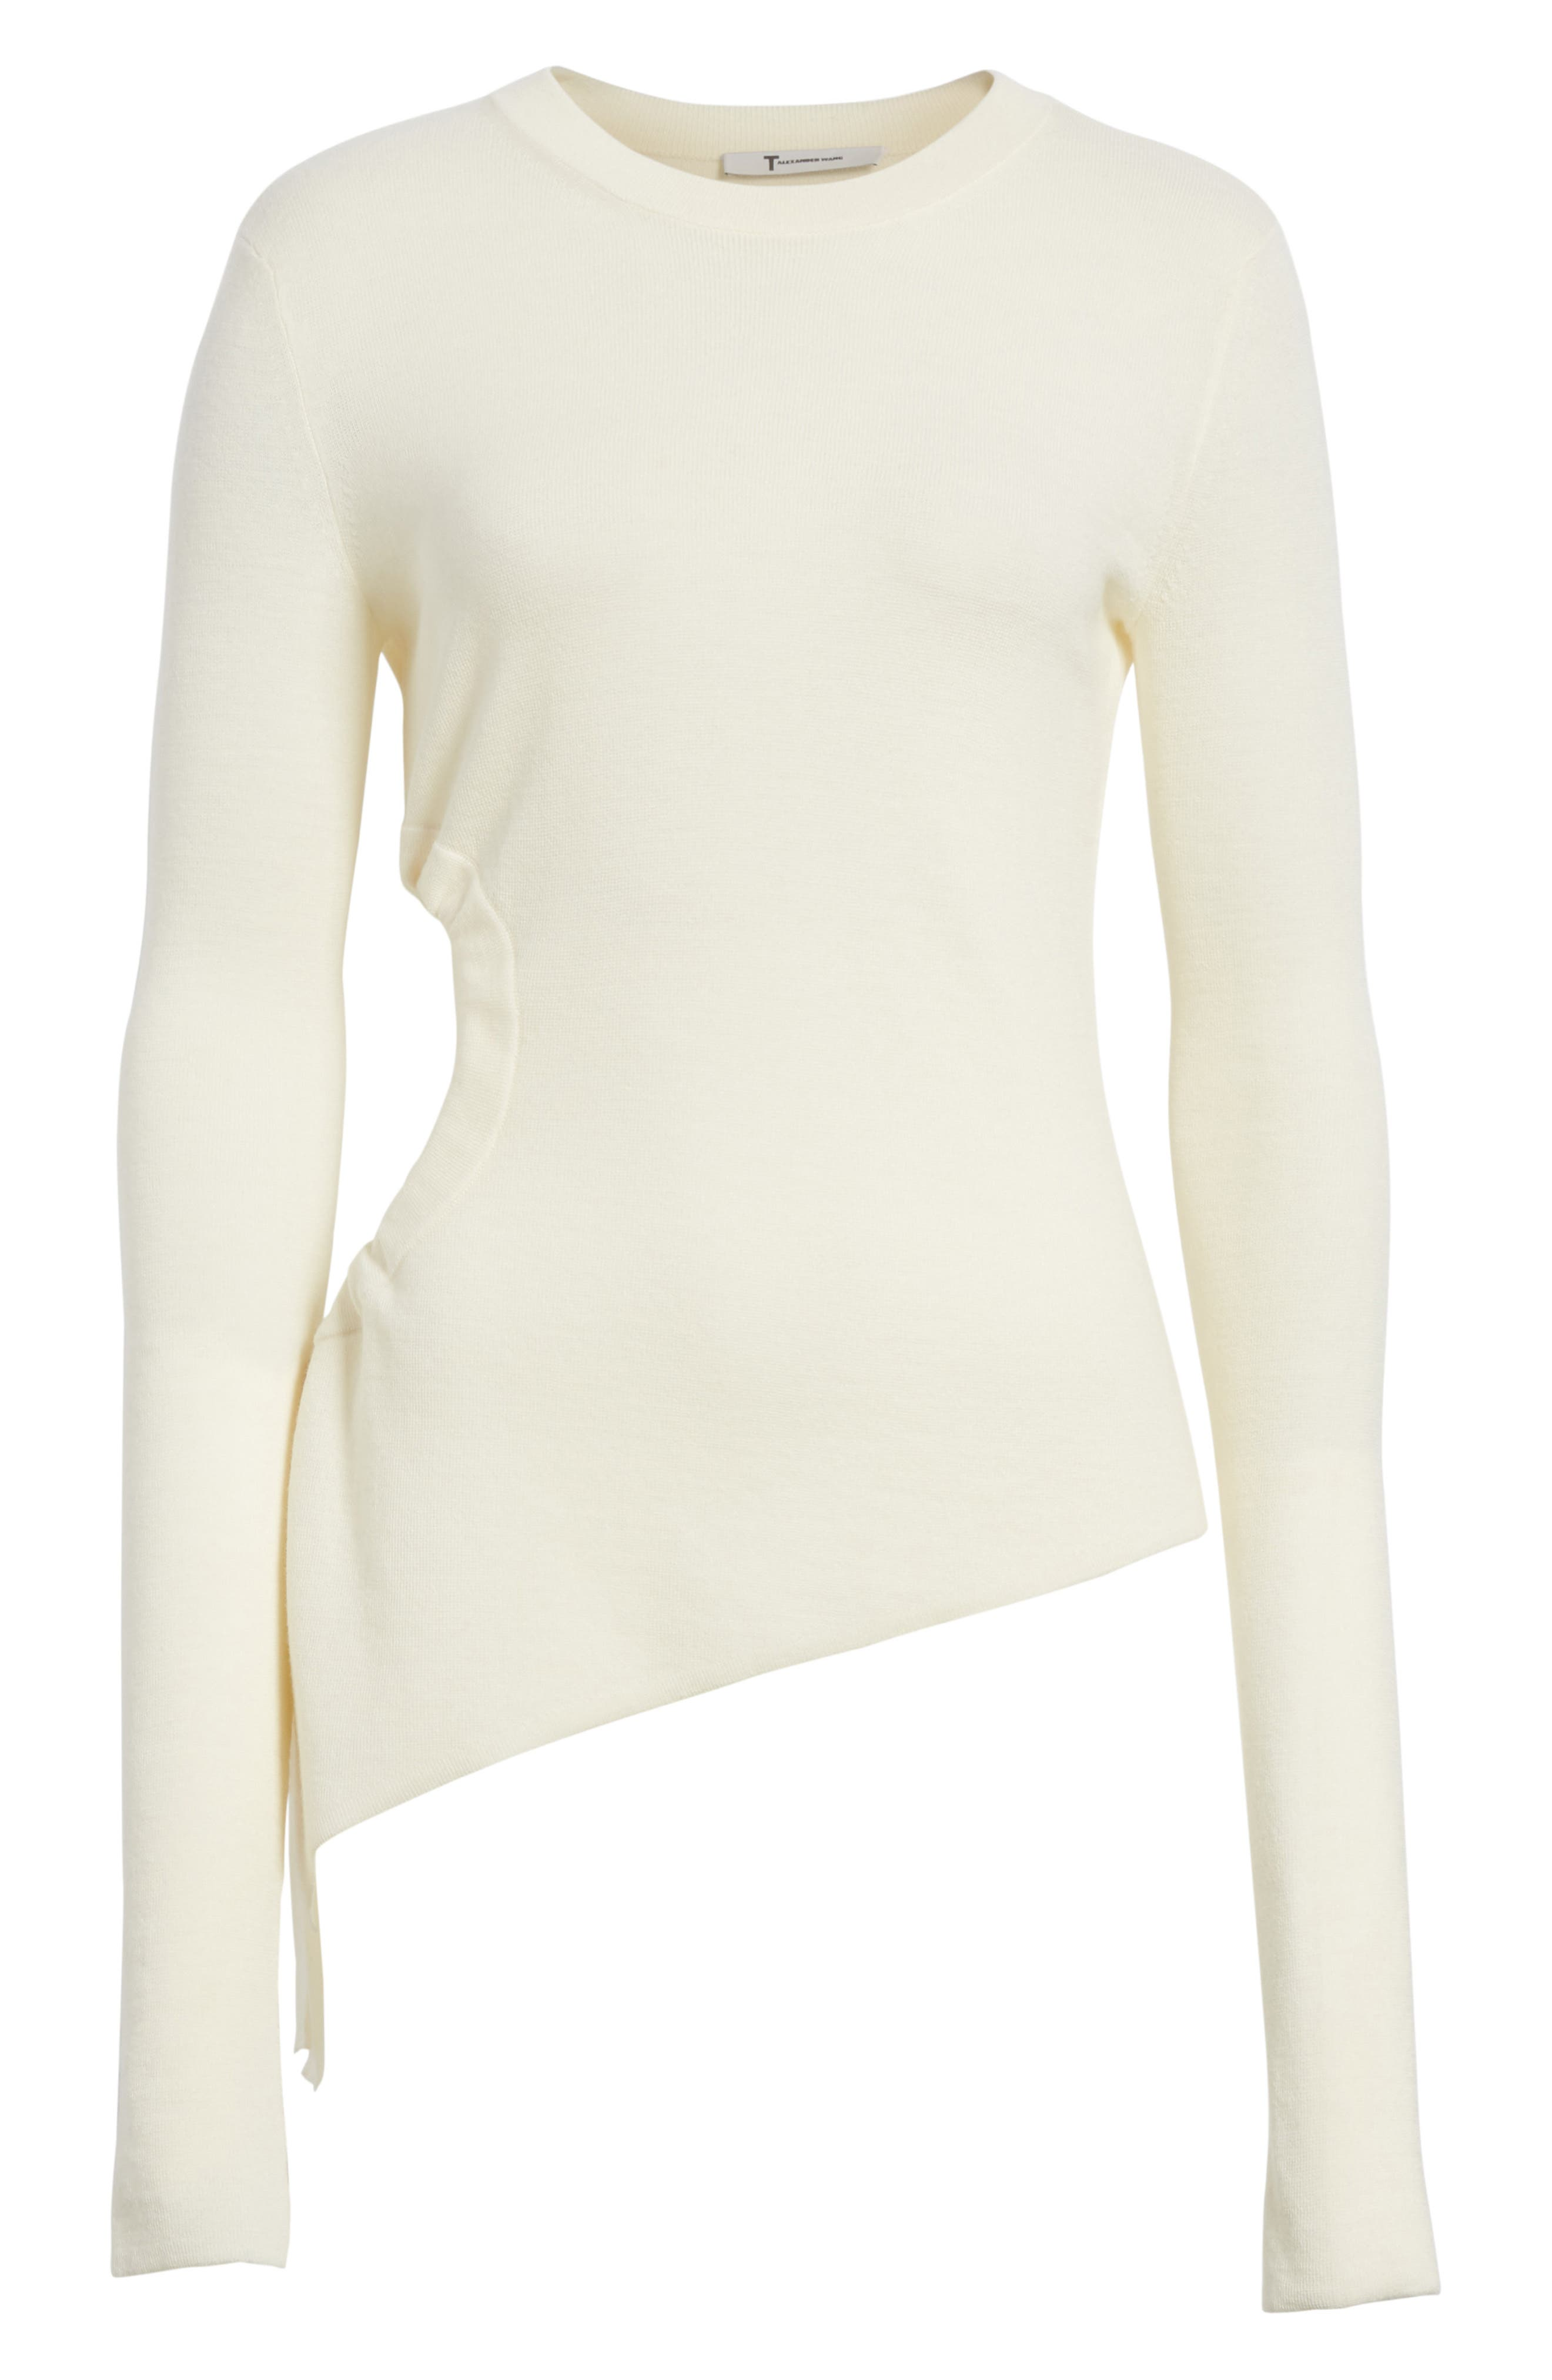 T by Alexander Wang Ruched Cutout Merino Wool Sweater,                             Alternate thumbnail 6, color,                             906